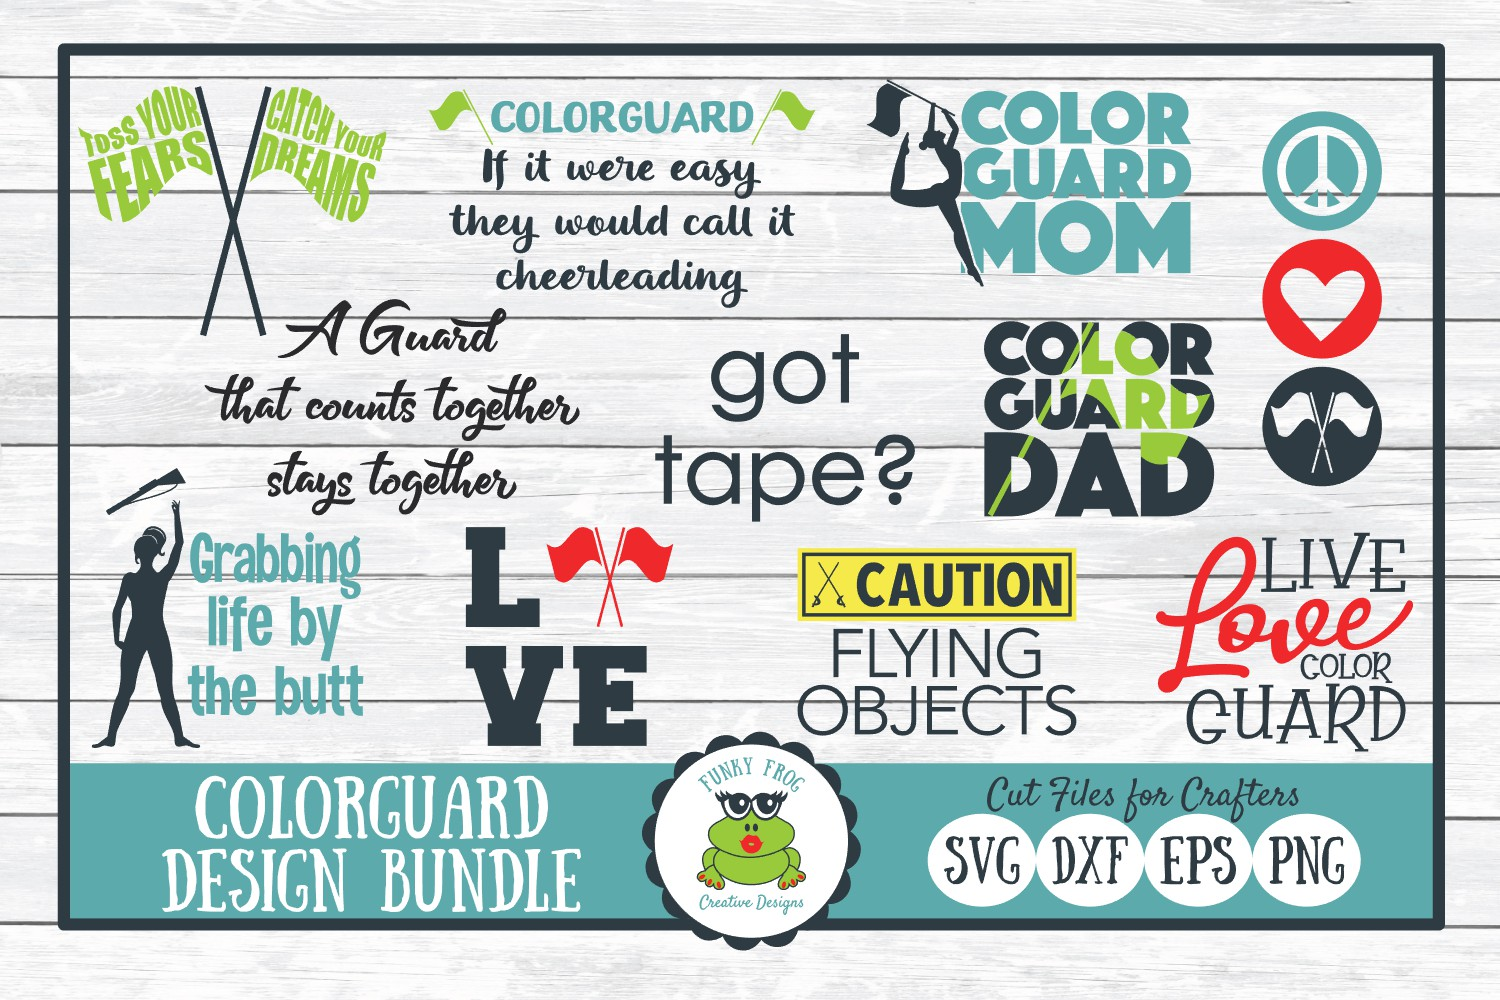 Color Guard SVG Design Bundle, Cut Files for Crafters example image 1